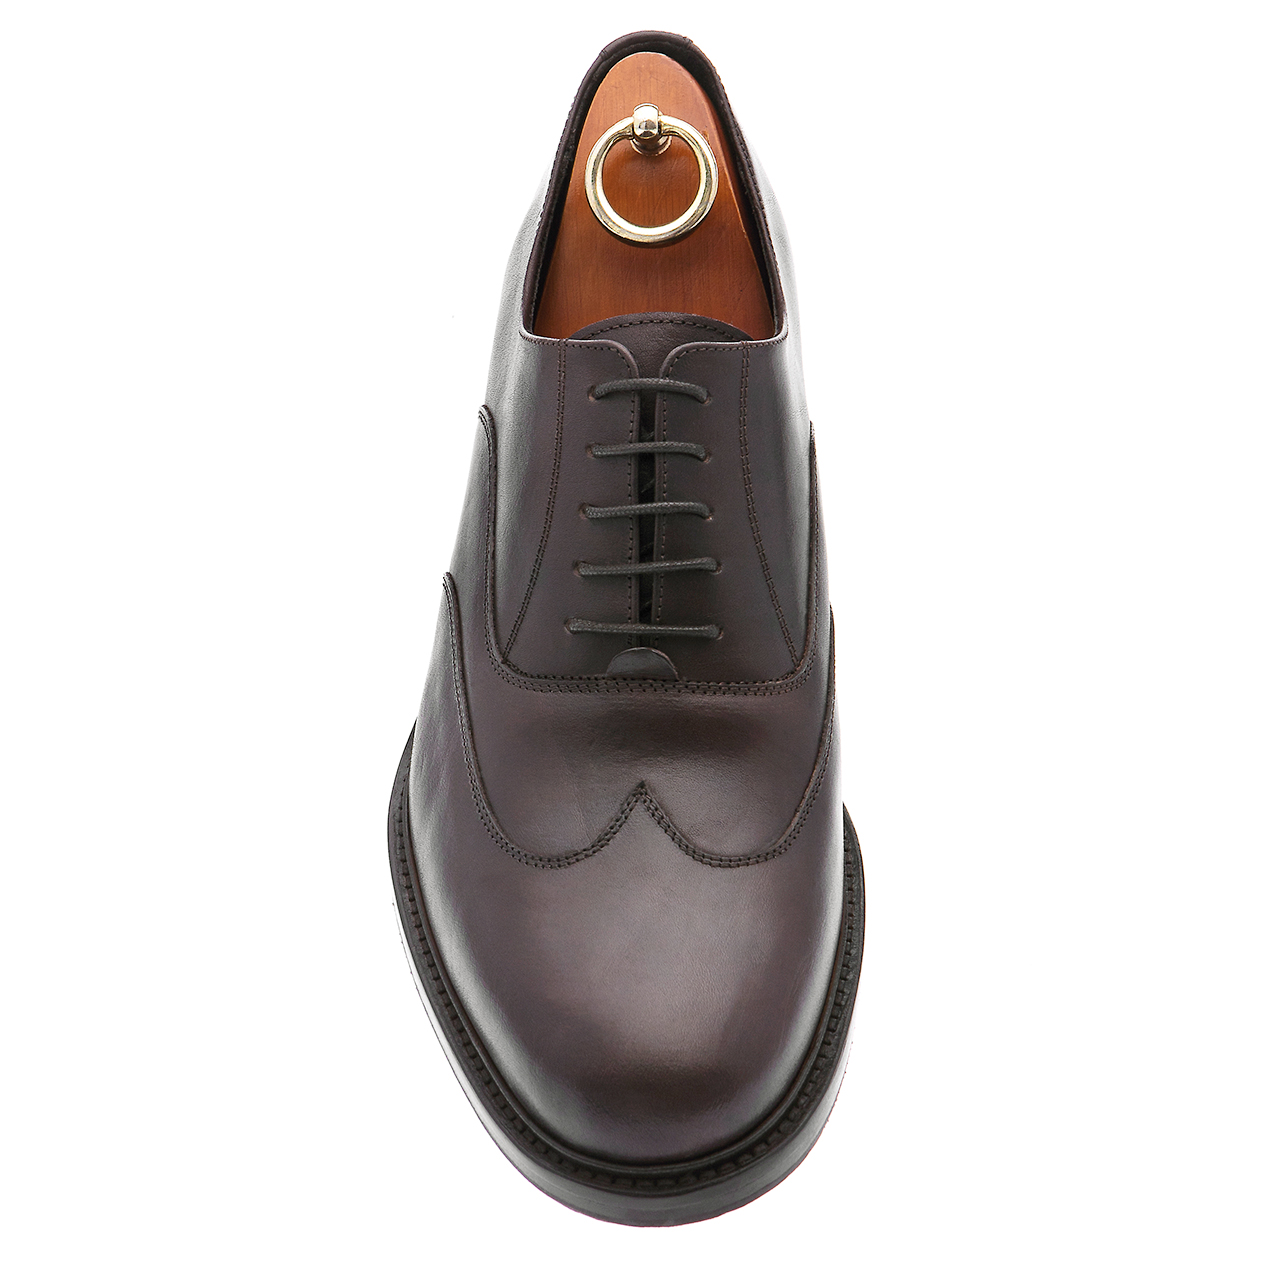 Bespoke elevator shoes Firenze  227608ed385